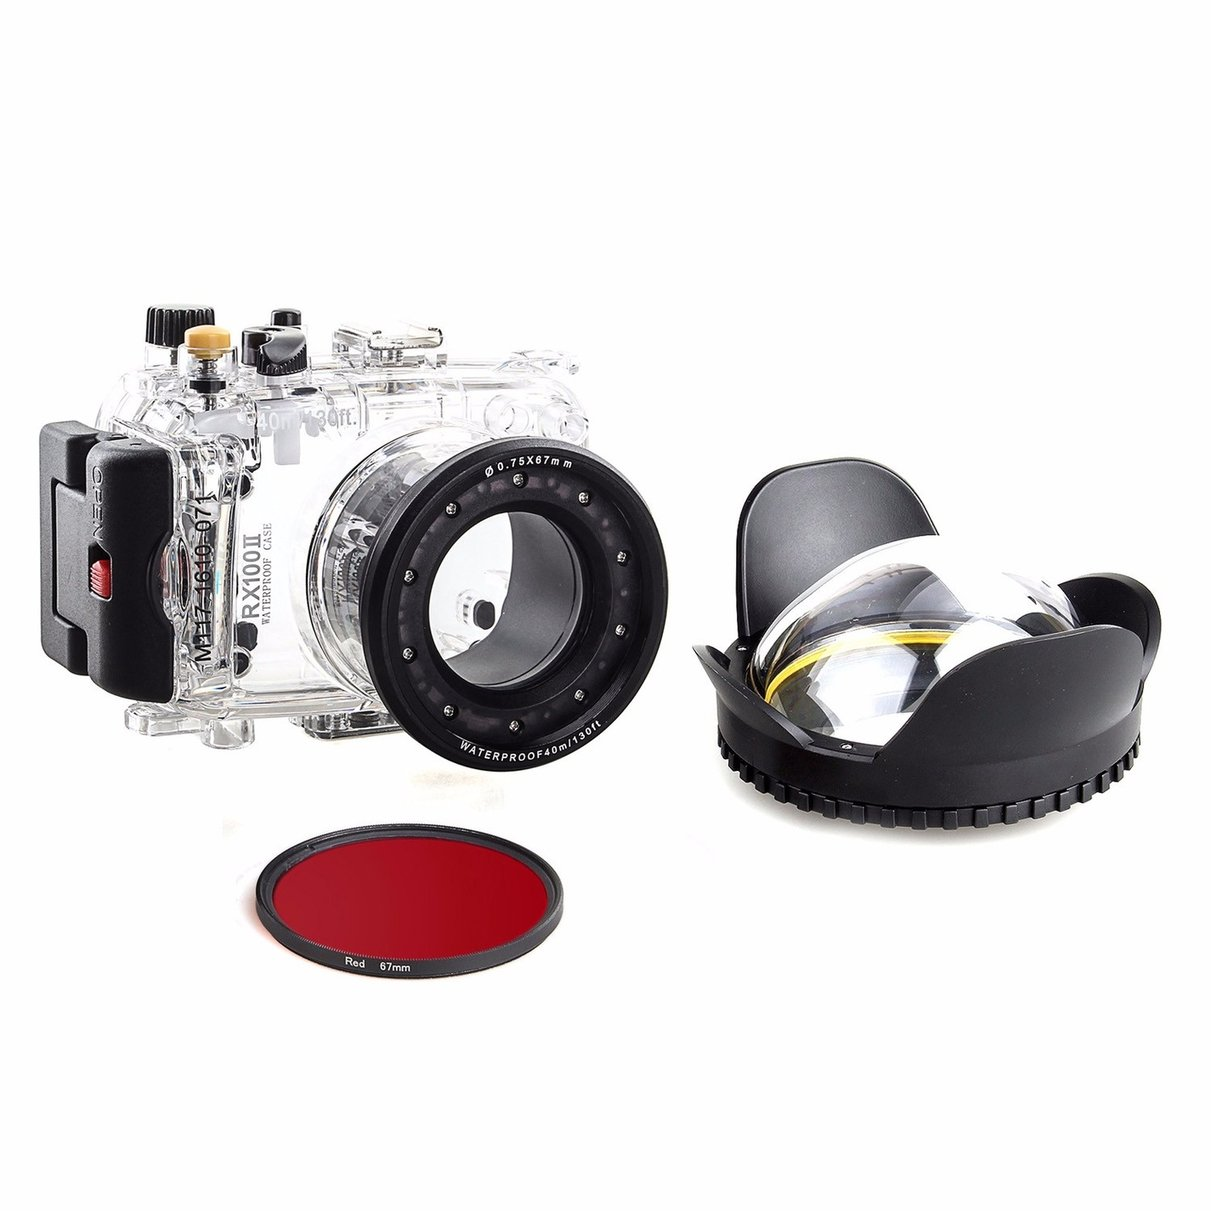 цена 40m/130f Waterproof Underwater Camera Housing Diving Case for SONY DSC RX100 ii + Red Filter 67mm + 67mm Fisheye Lens